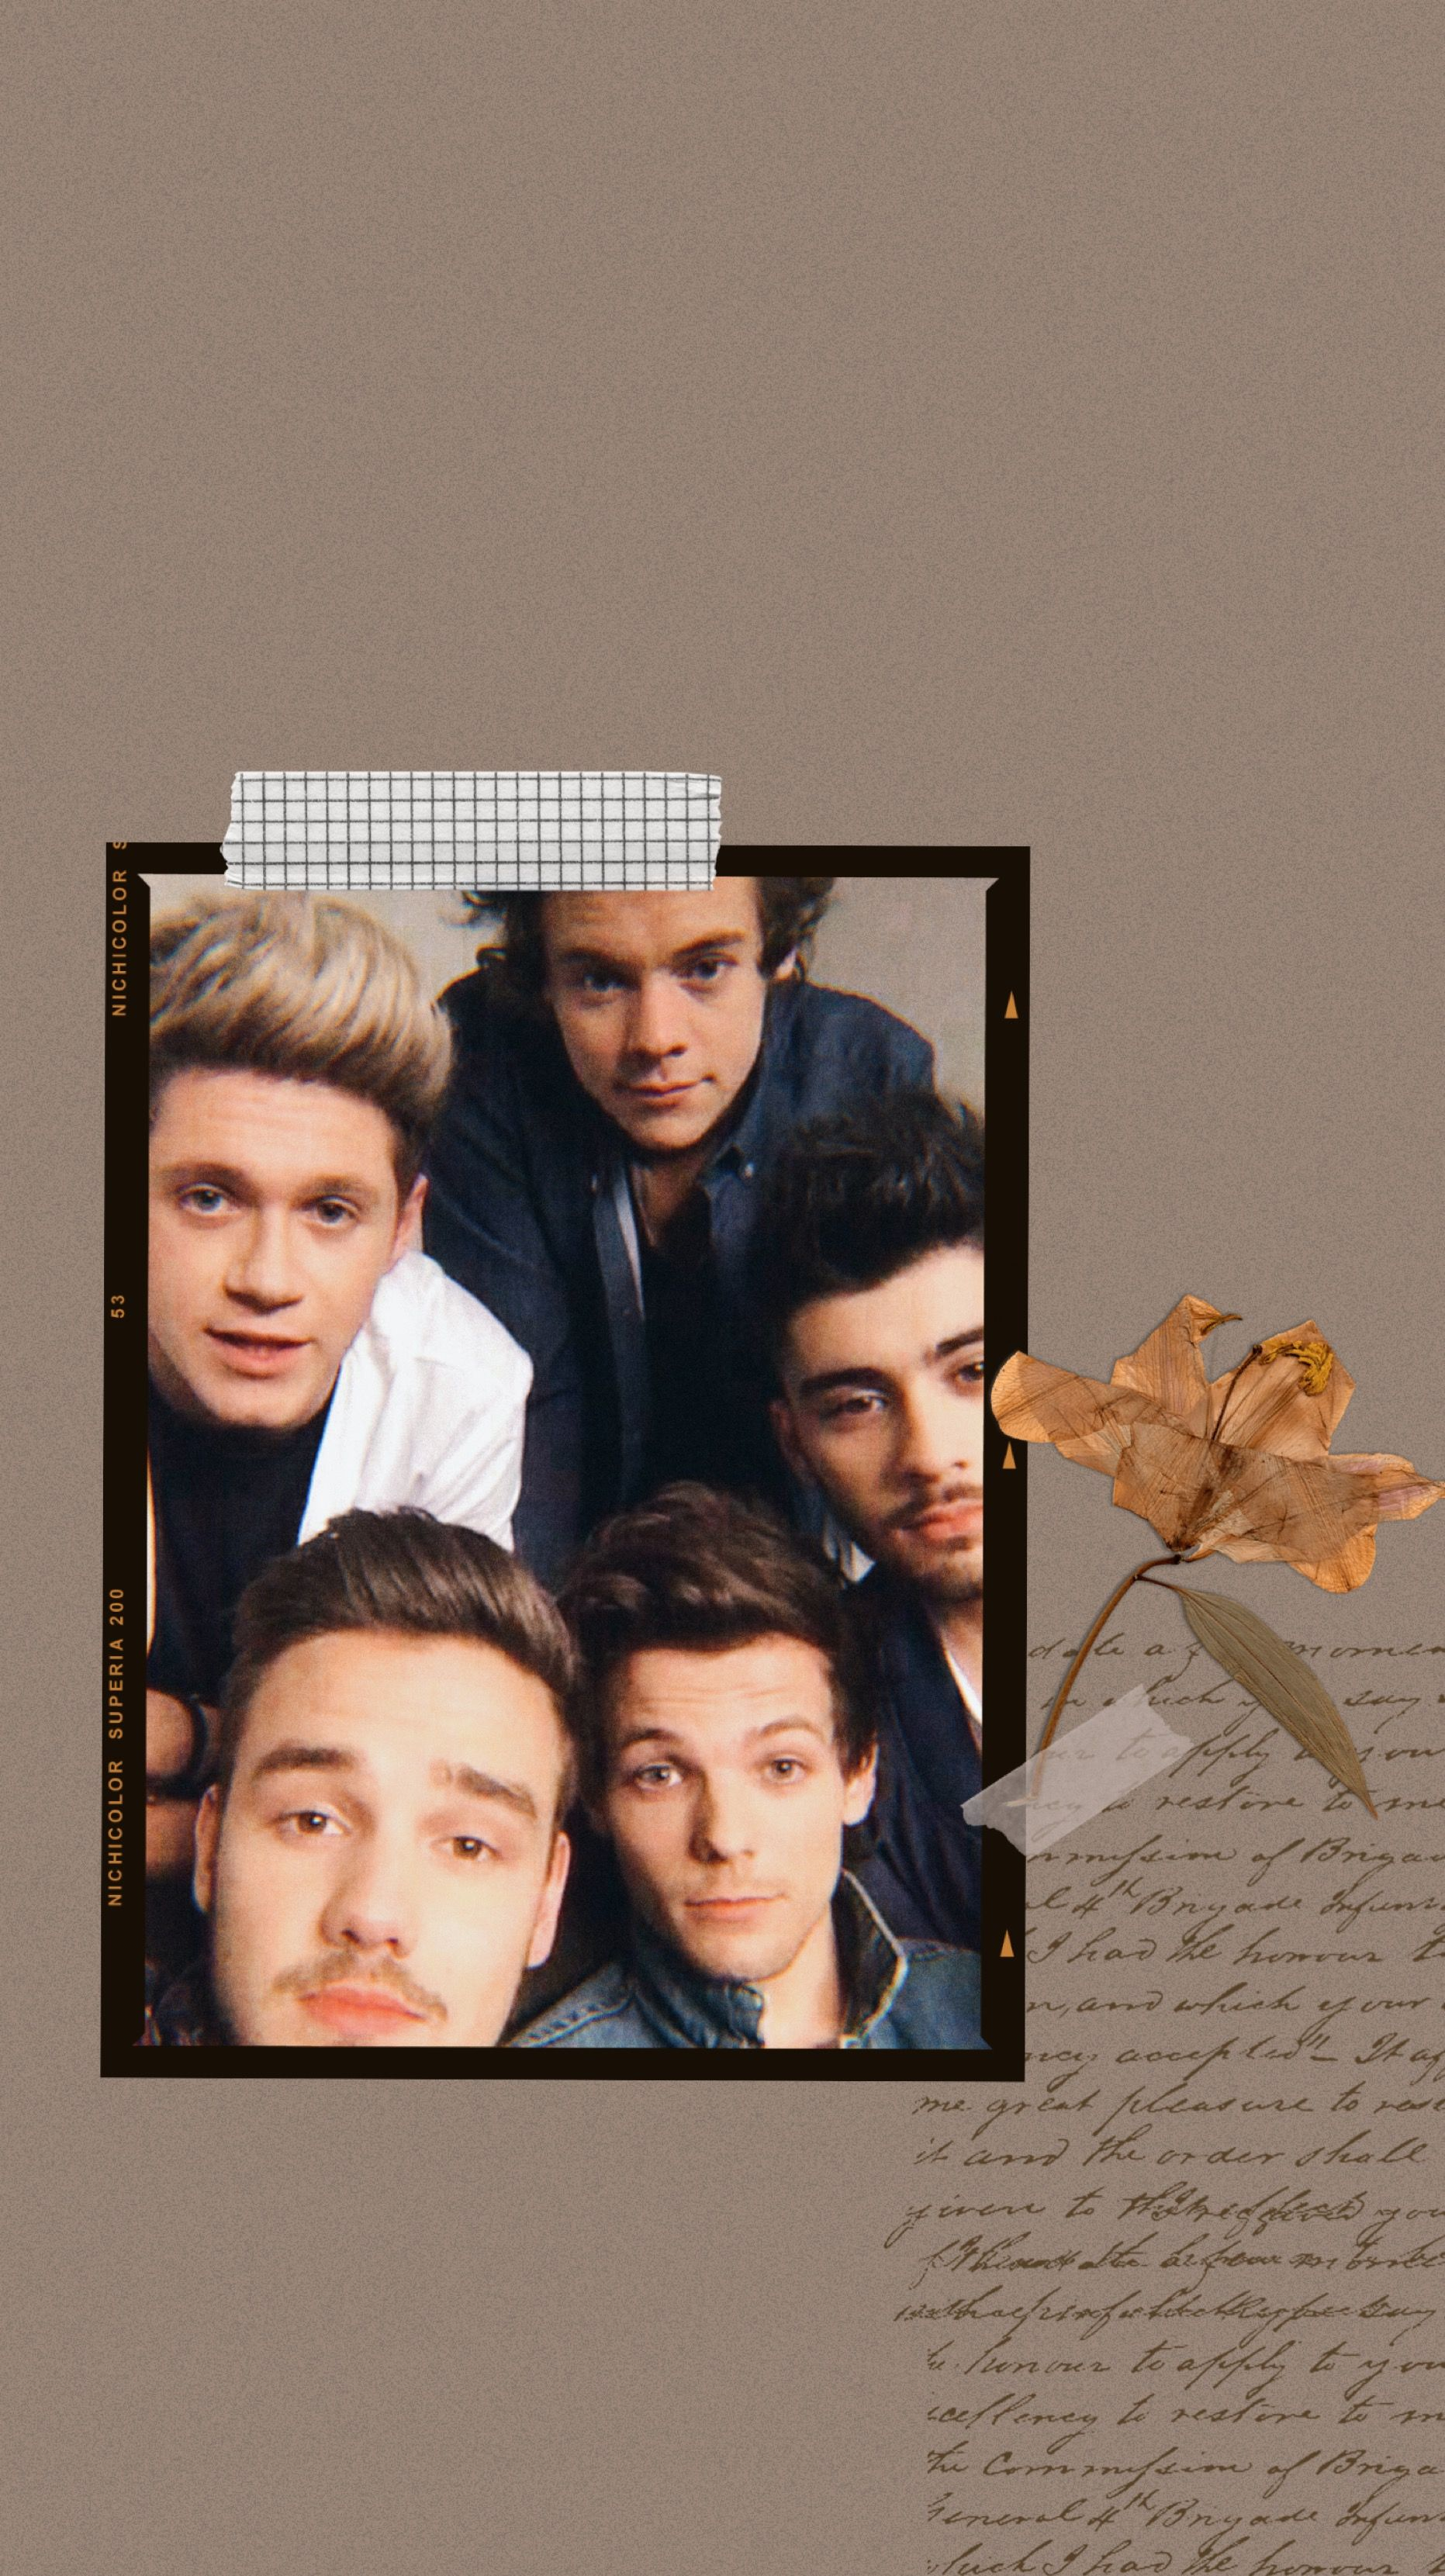 Lockscreen Onedirection Aesthetic Edits Harrystyles Niallhoran Liampayne Louistomlinson Zaynmalik